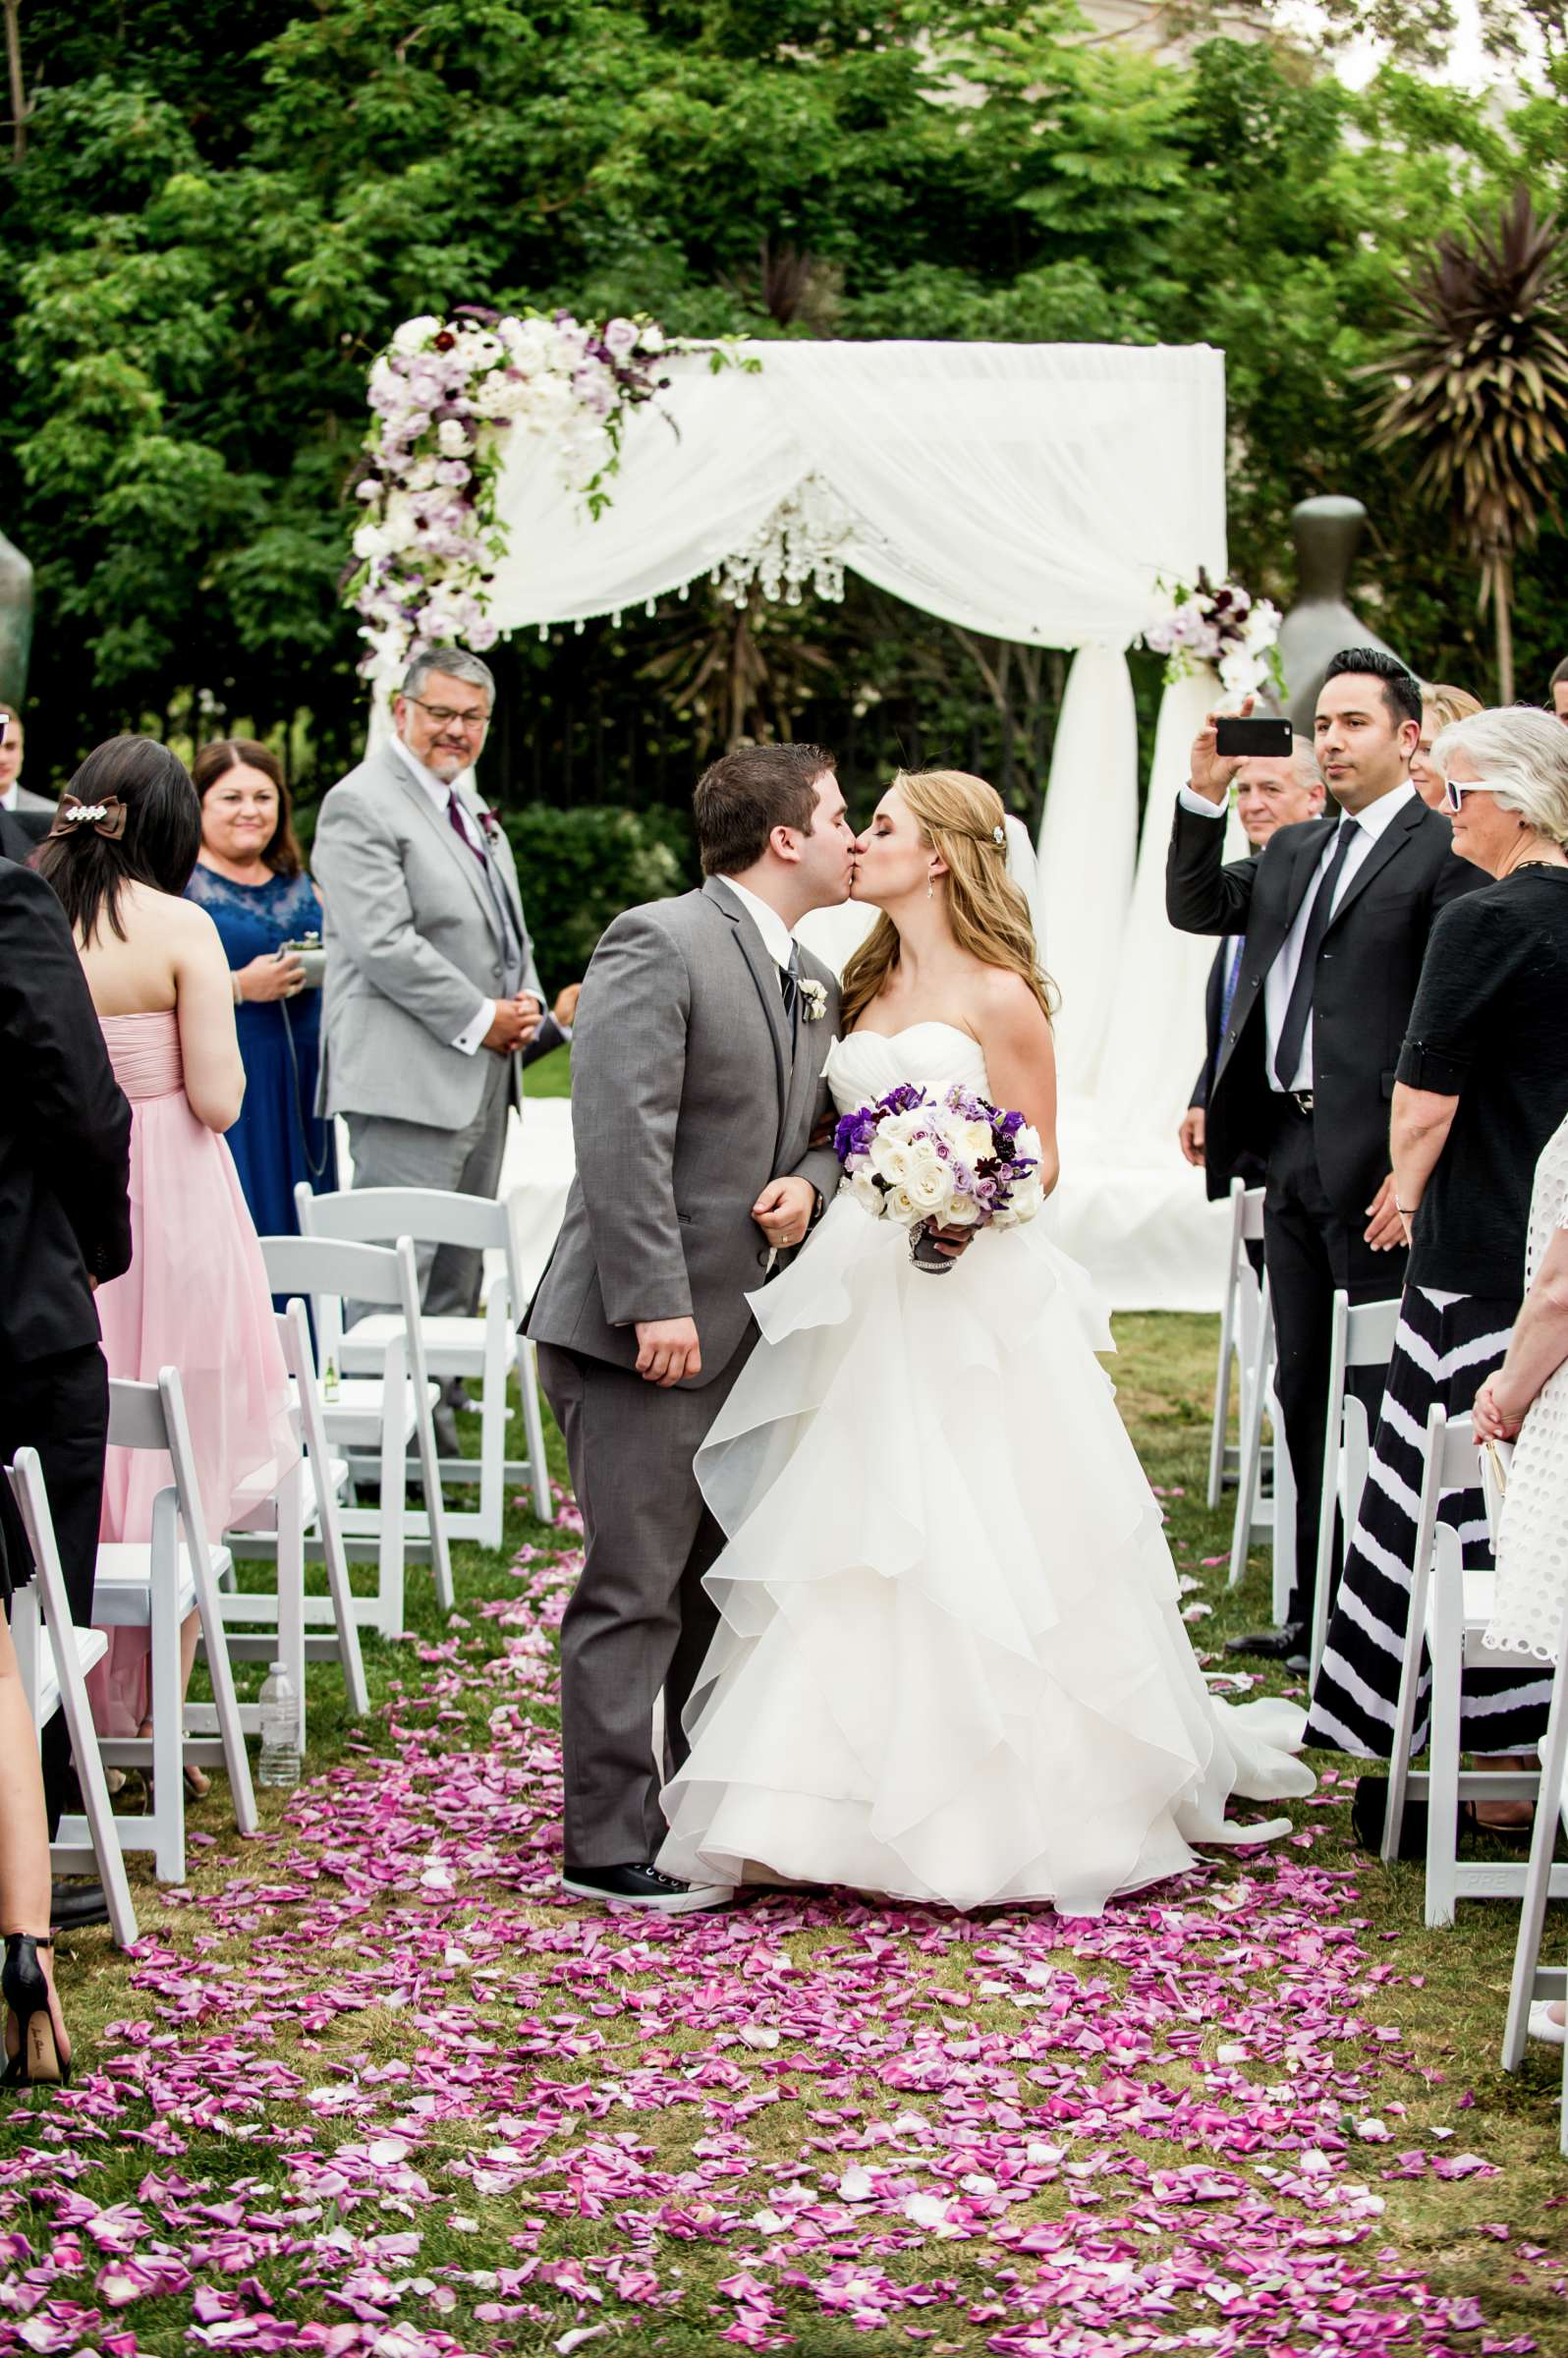 The Prado Wedding coordinated by Victoria Weddings & Events, Melissa and Andrew Wedding Photo #74 by True Photography